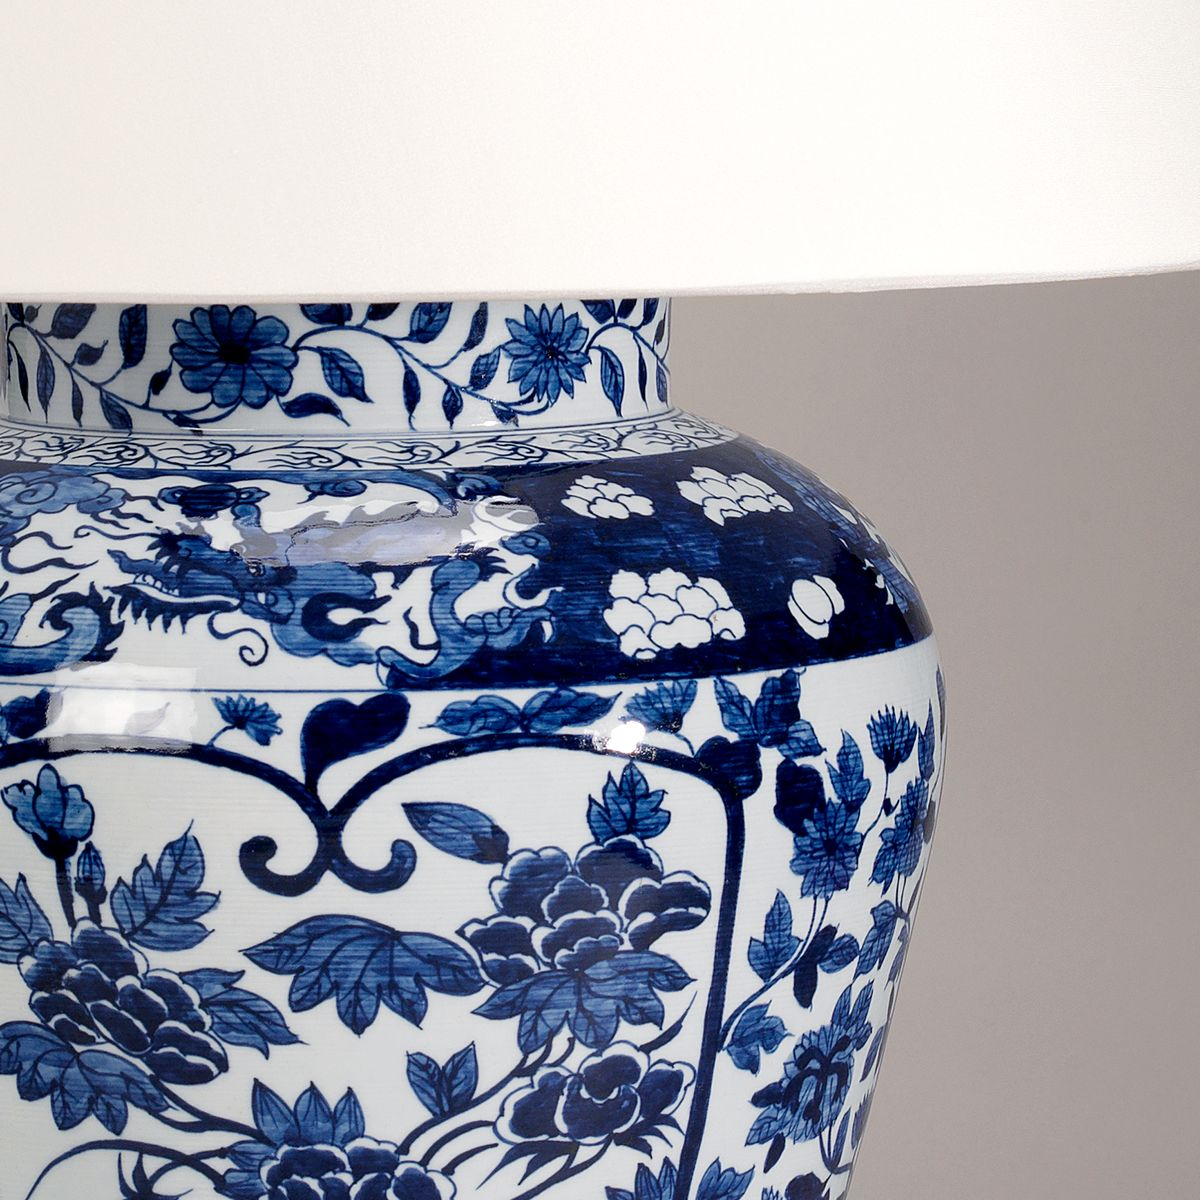 Imari Hand Decorated Porcelain Vase Lamp-Blue-Detail